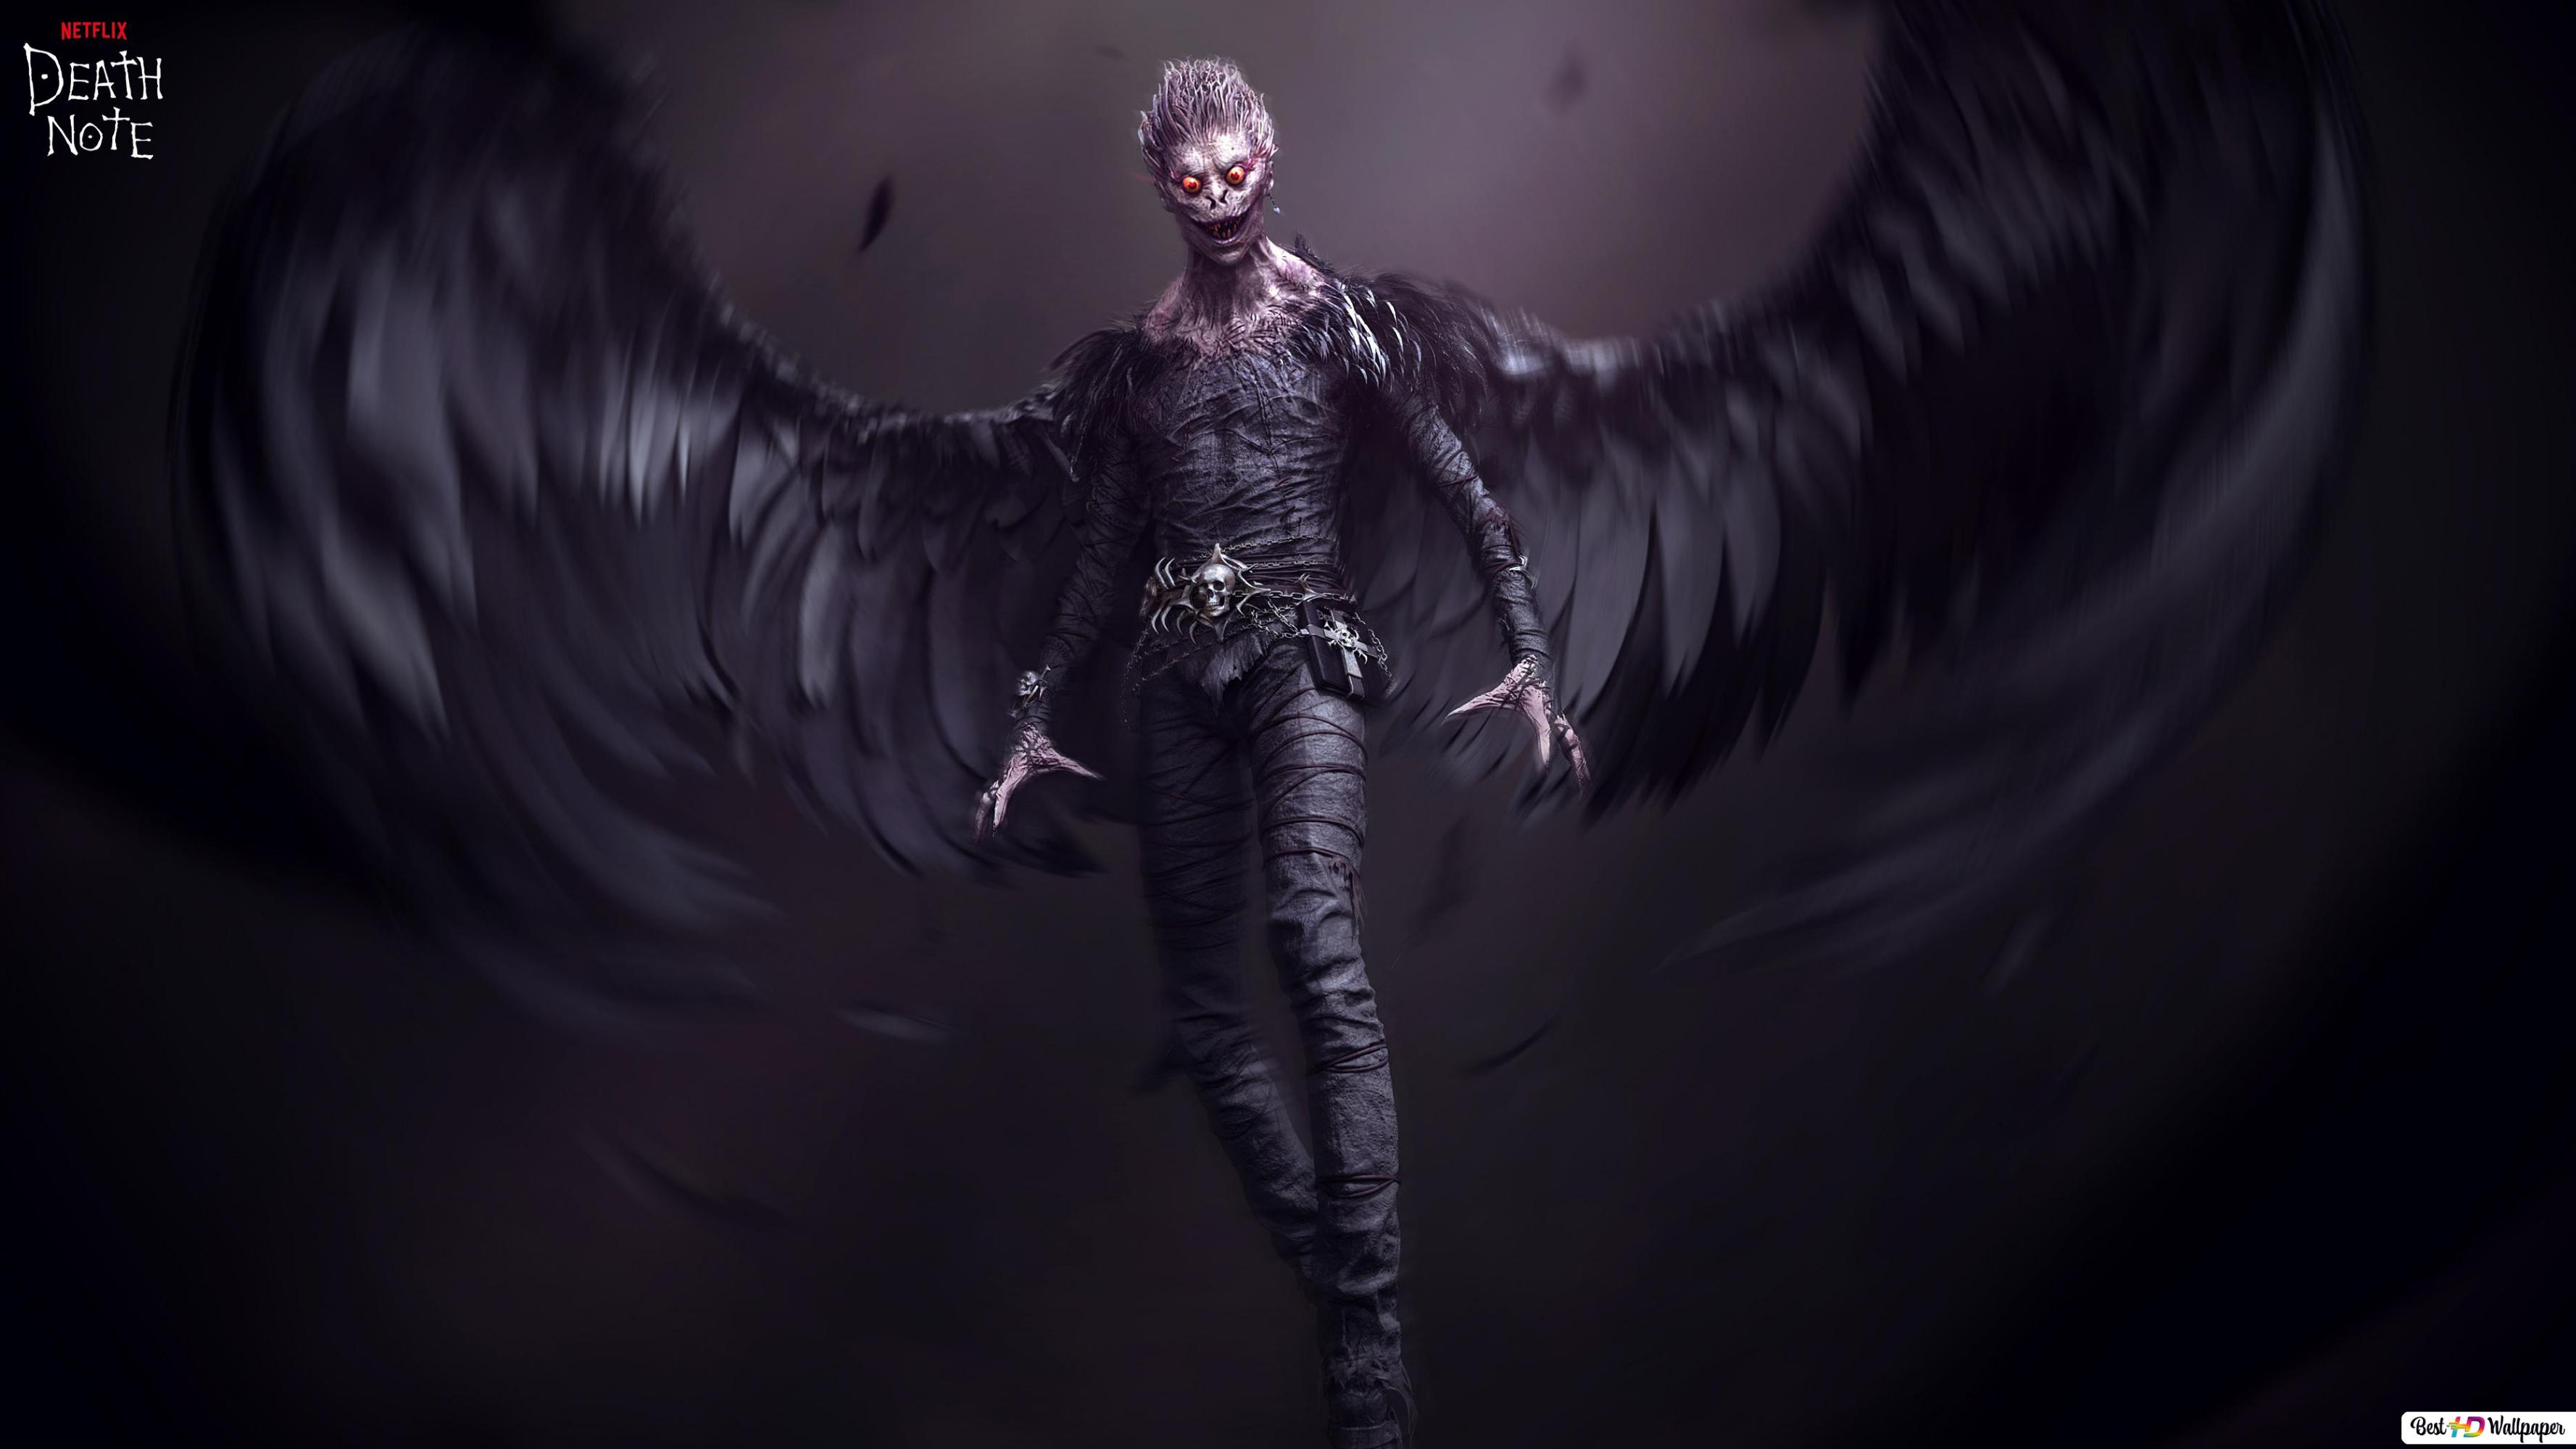 Ryuk From Death Note Anime Hd Wallpaper Download